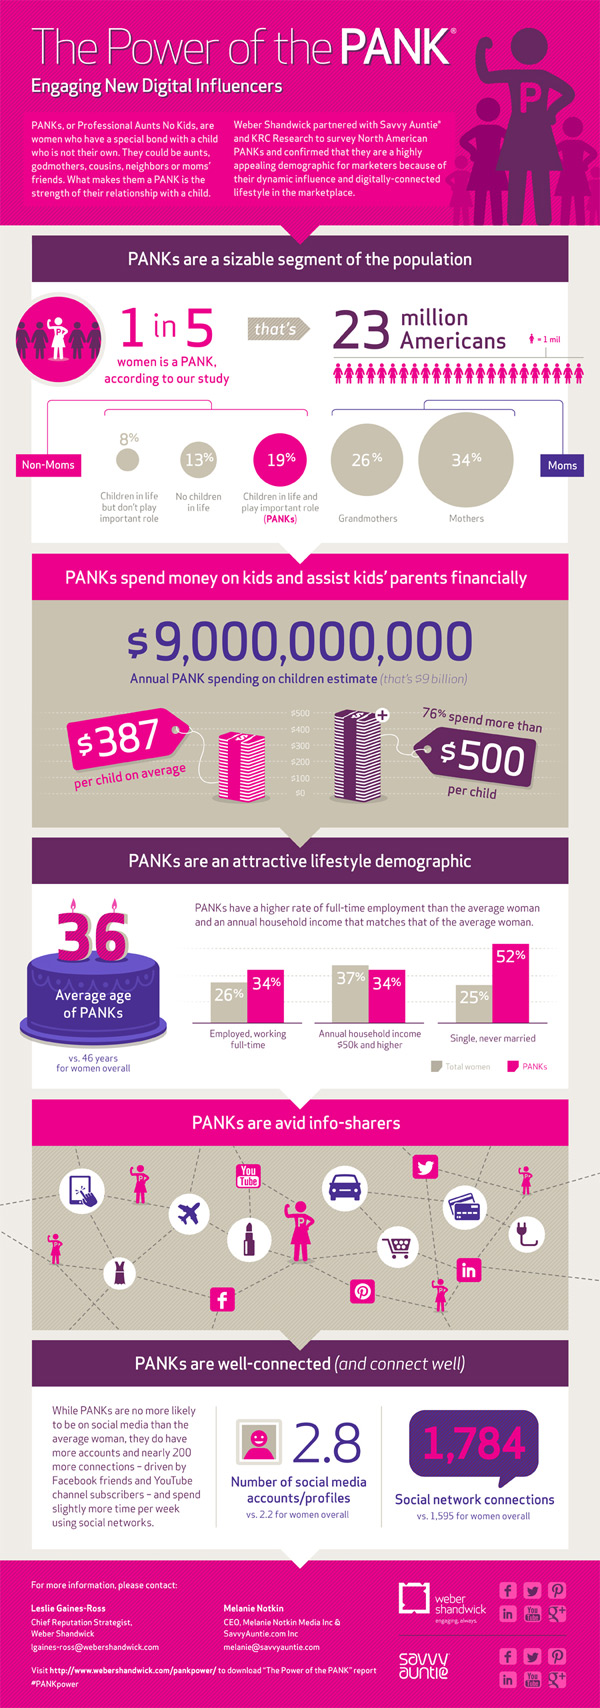 Power of the PANK infographic